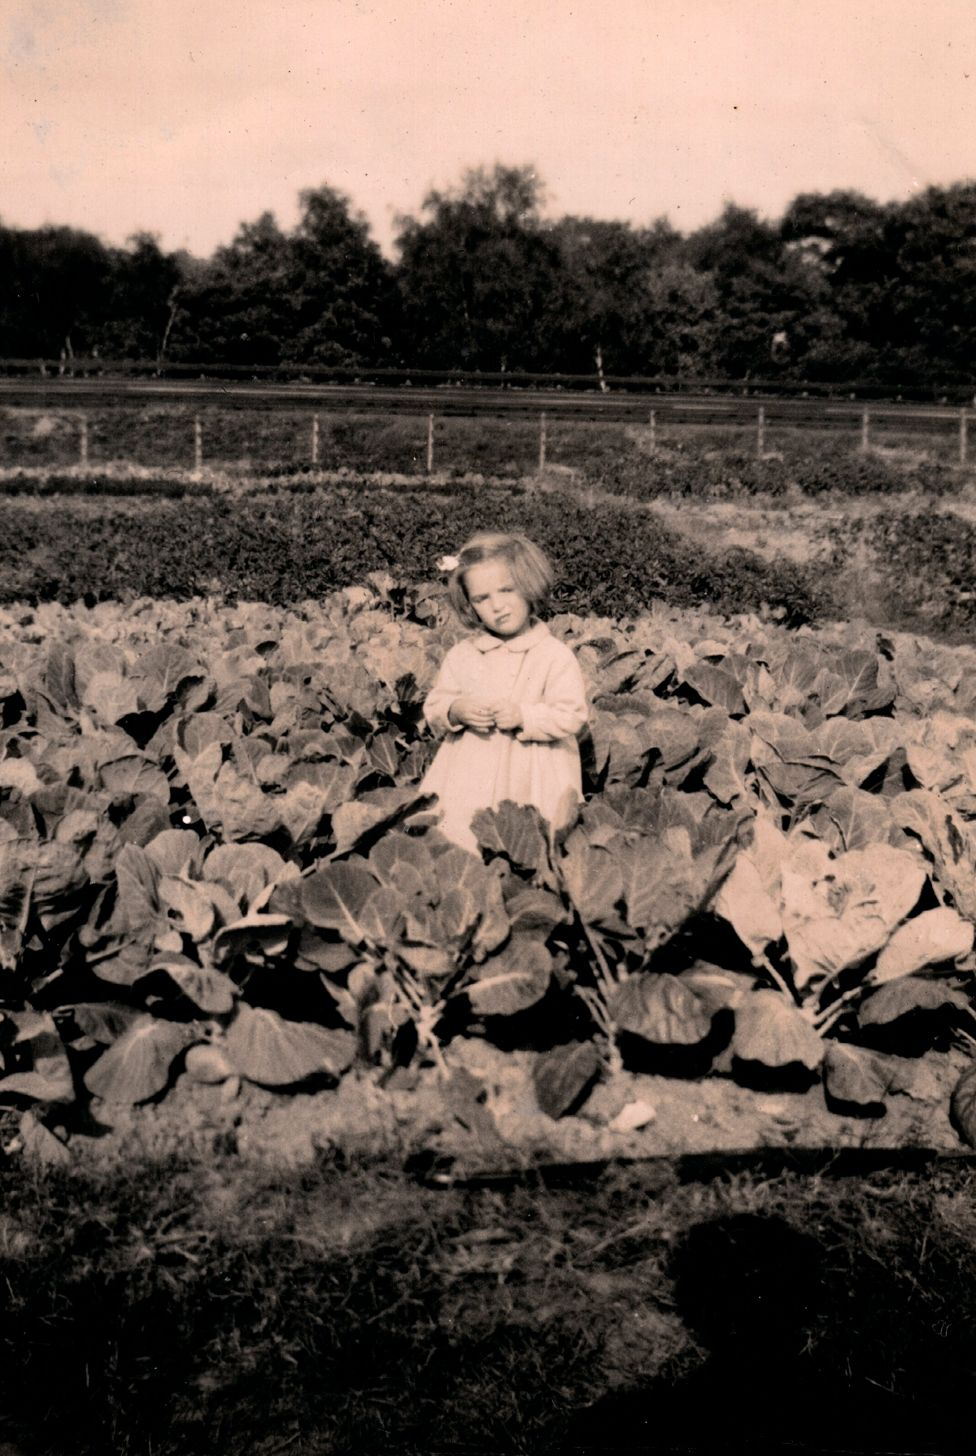 Christine Regas as a young girl on allotment